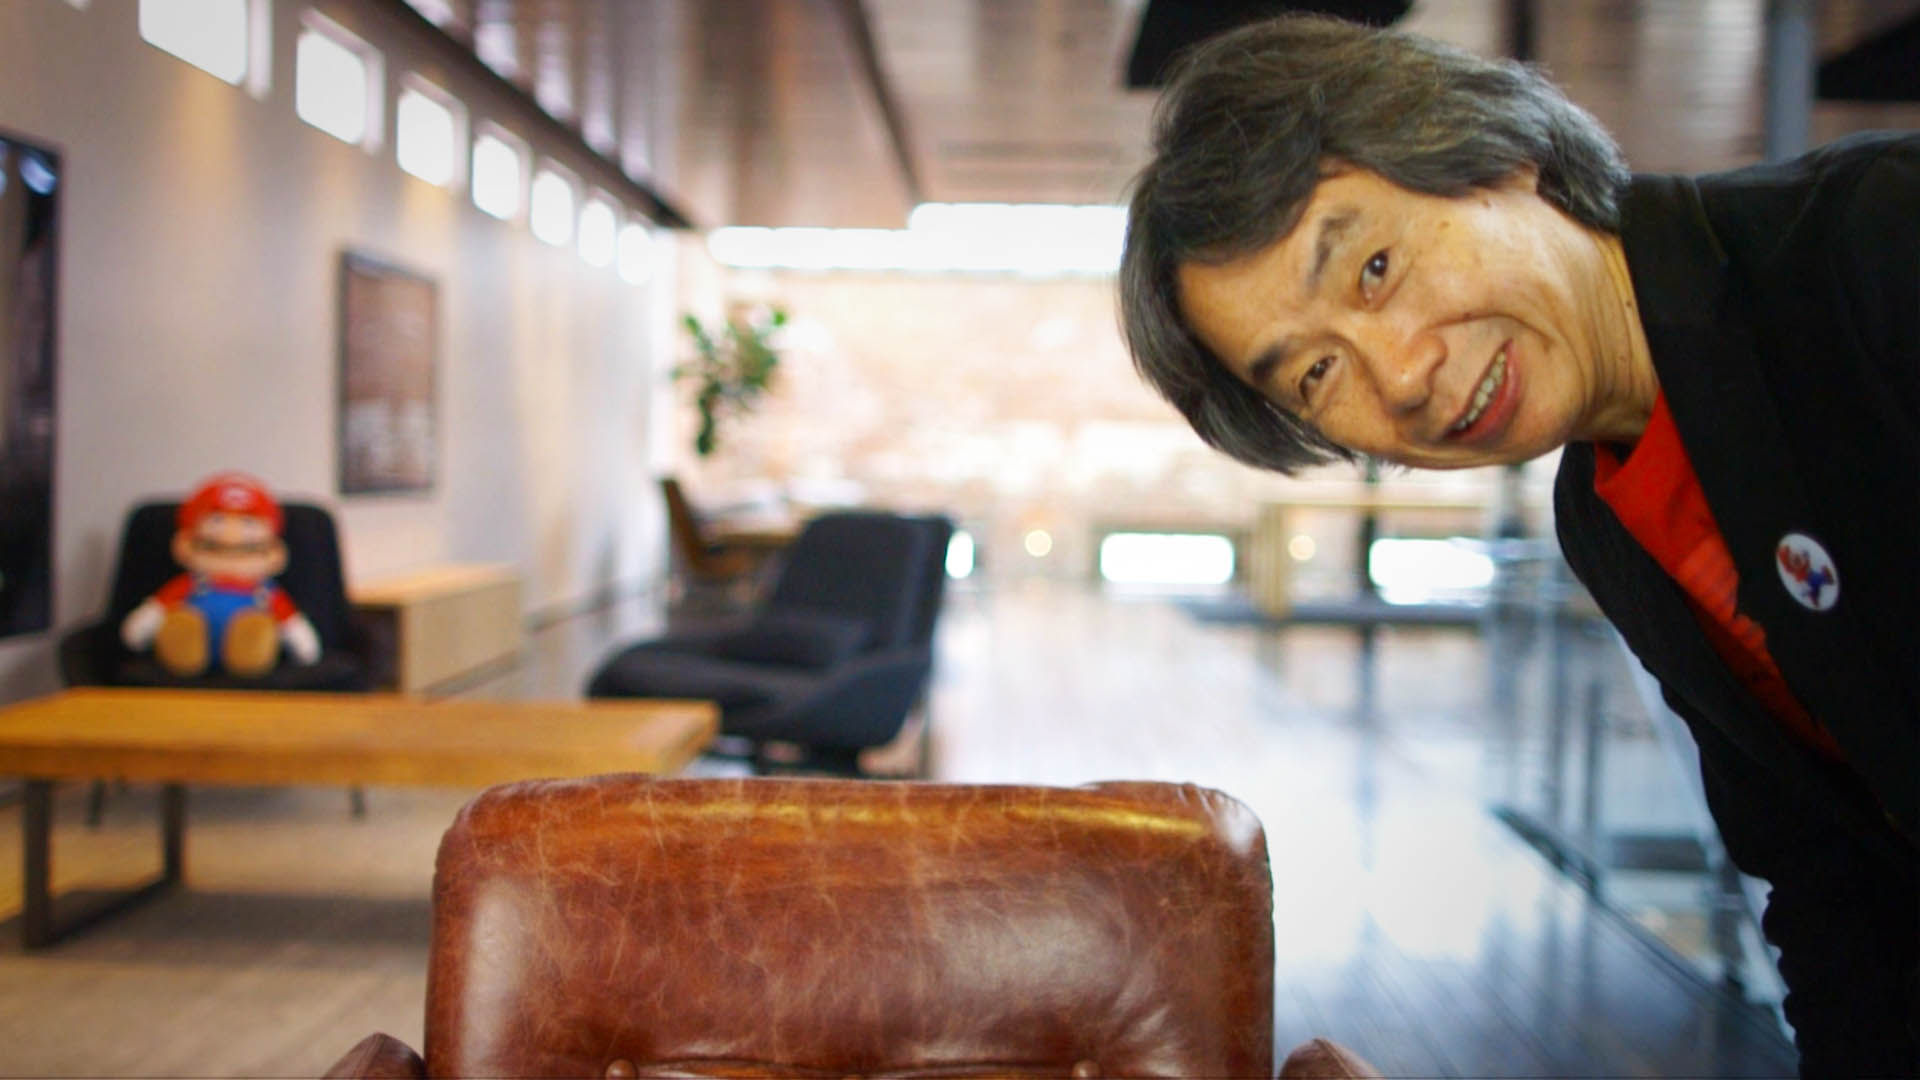 Shigeru Miyamoto peers into the camera during interview with Vox